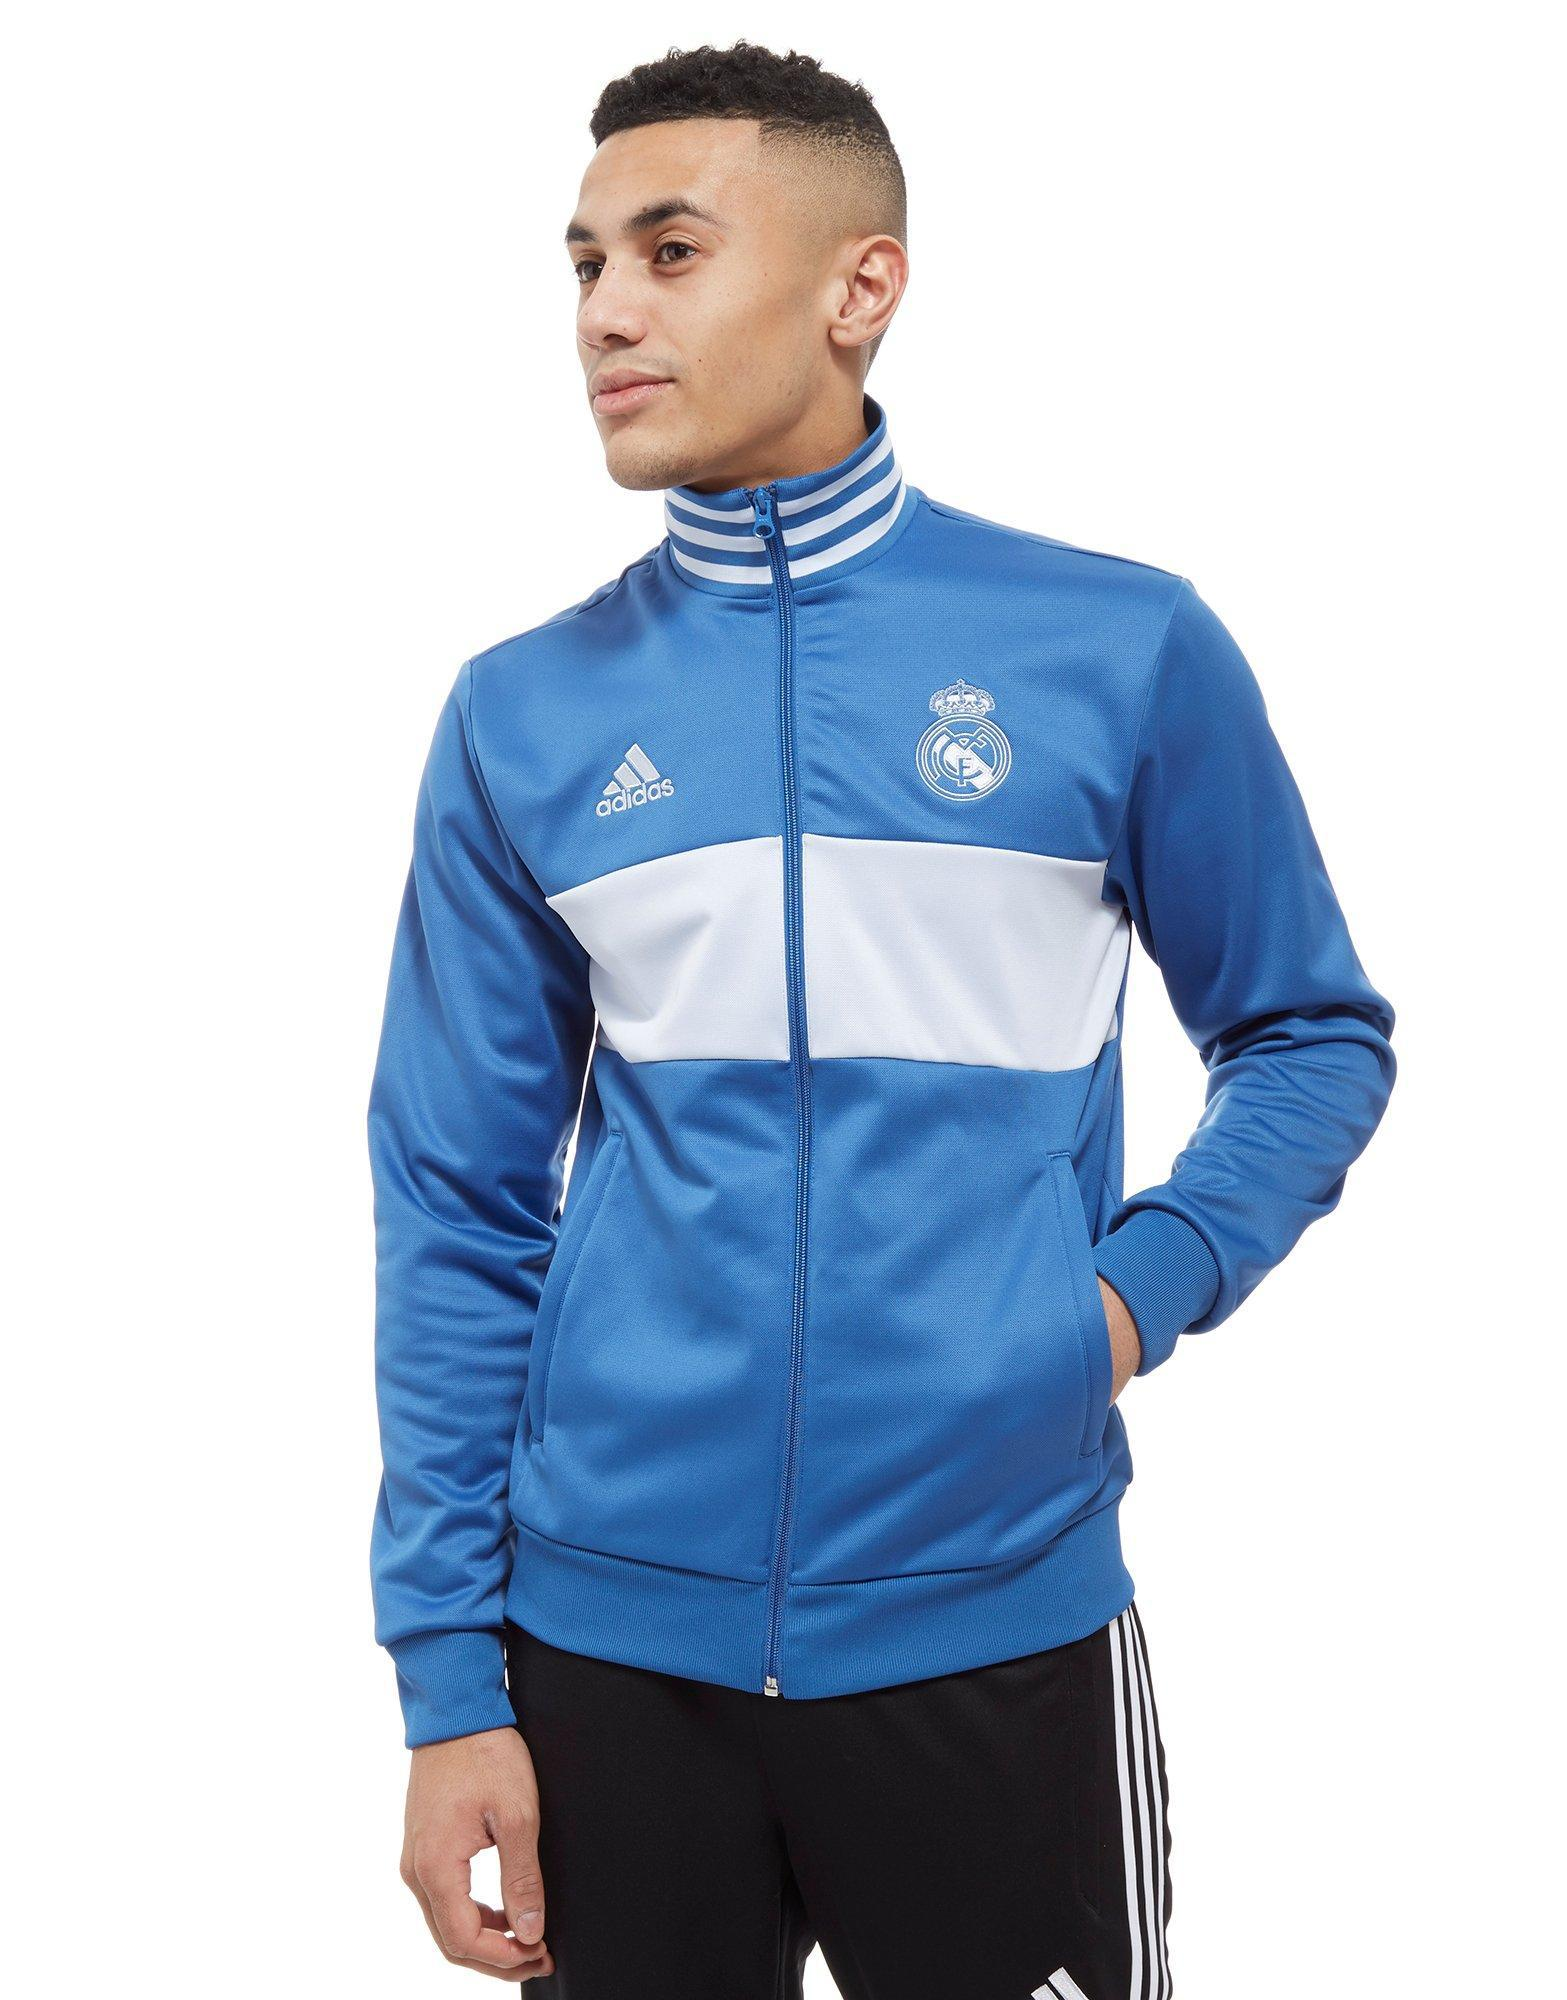 71cbd6041 adidas Real Madrid 3-stripes Track Top in Blue for Men - Lyst